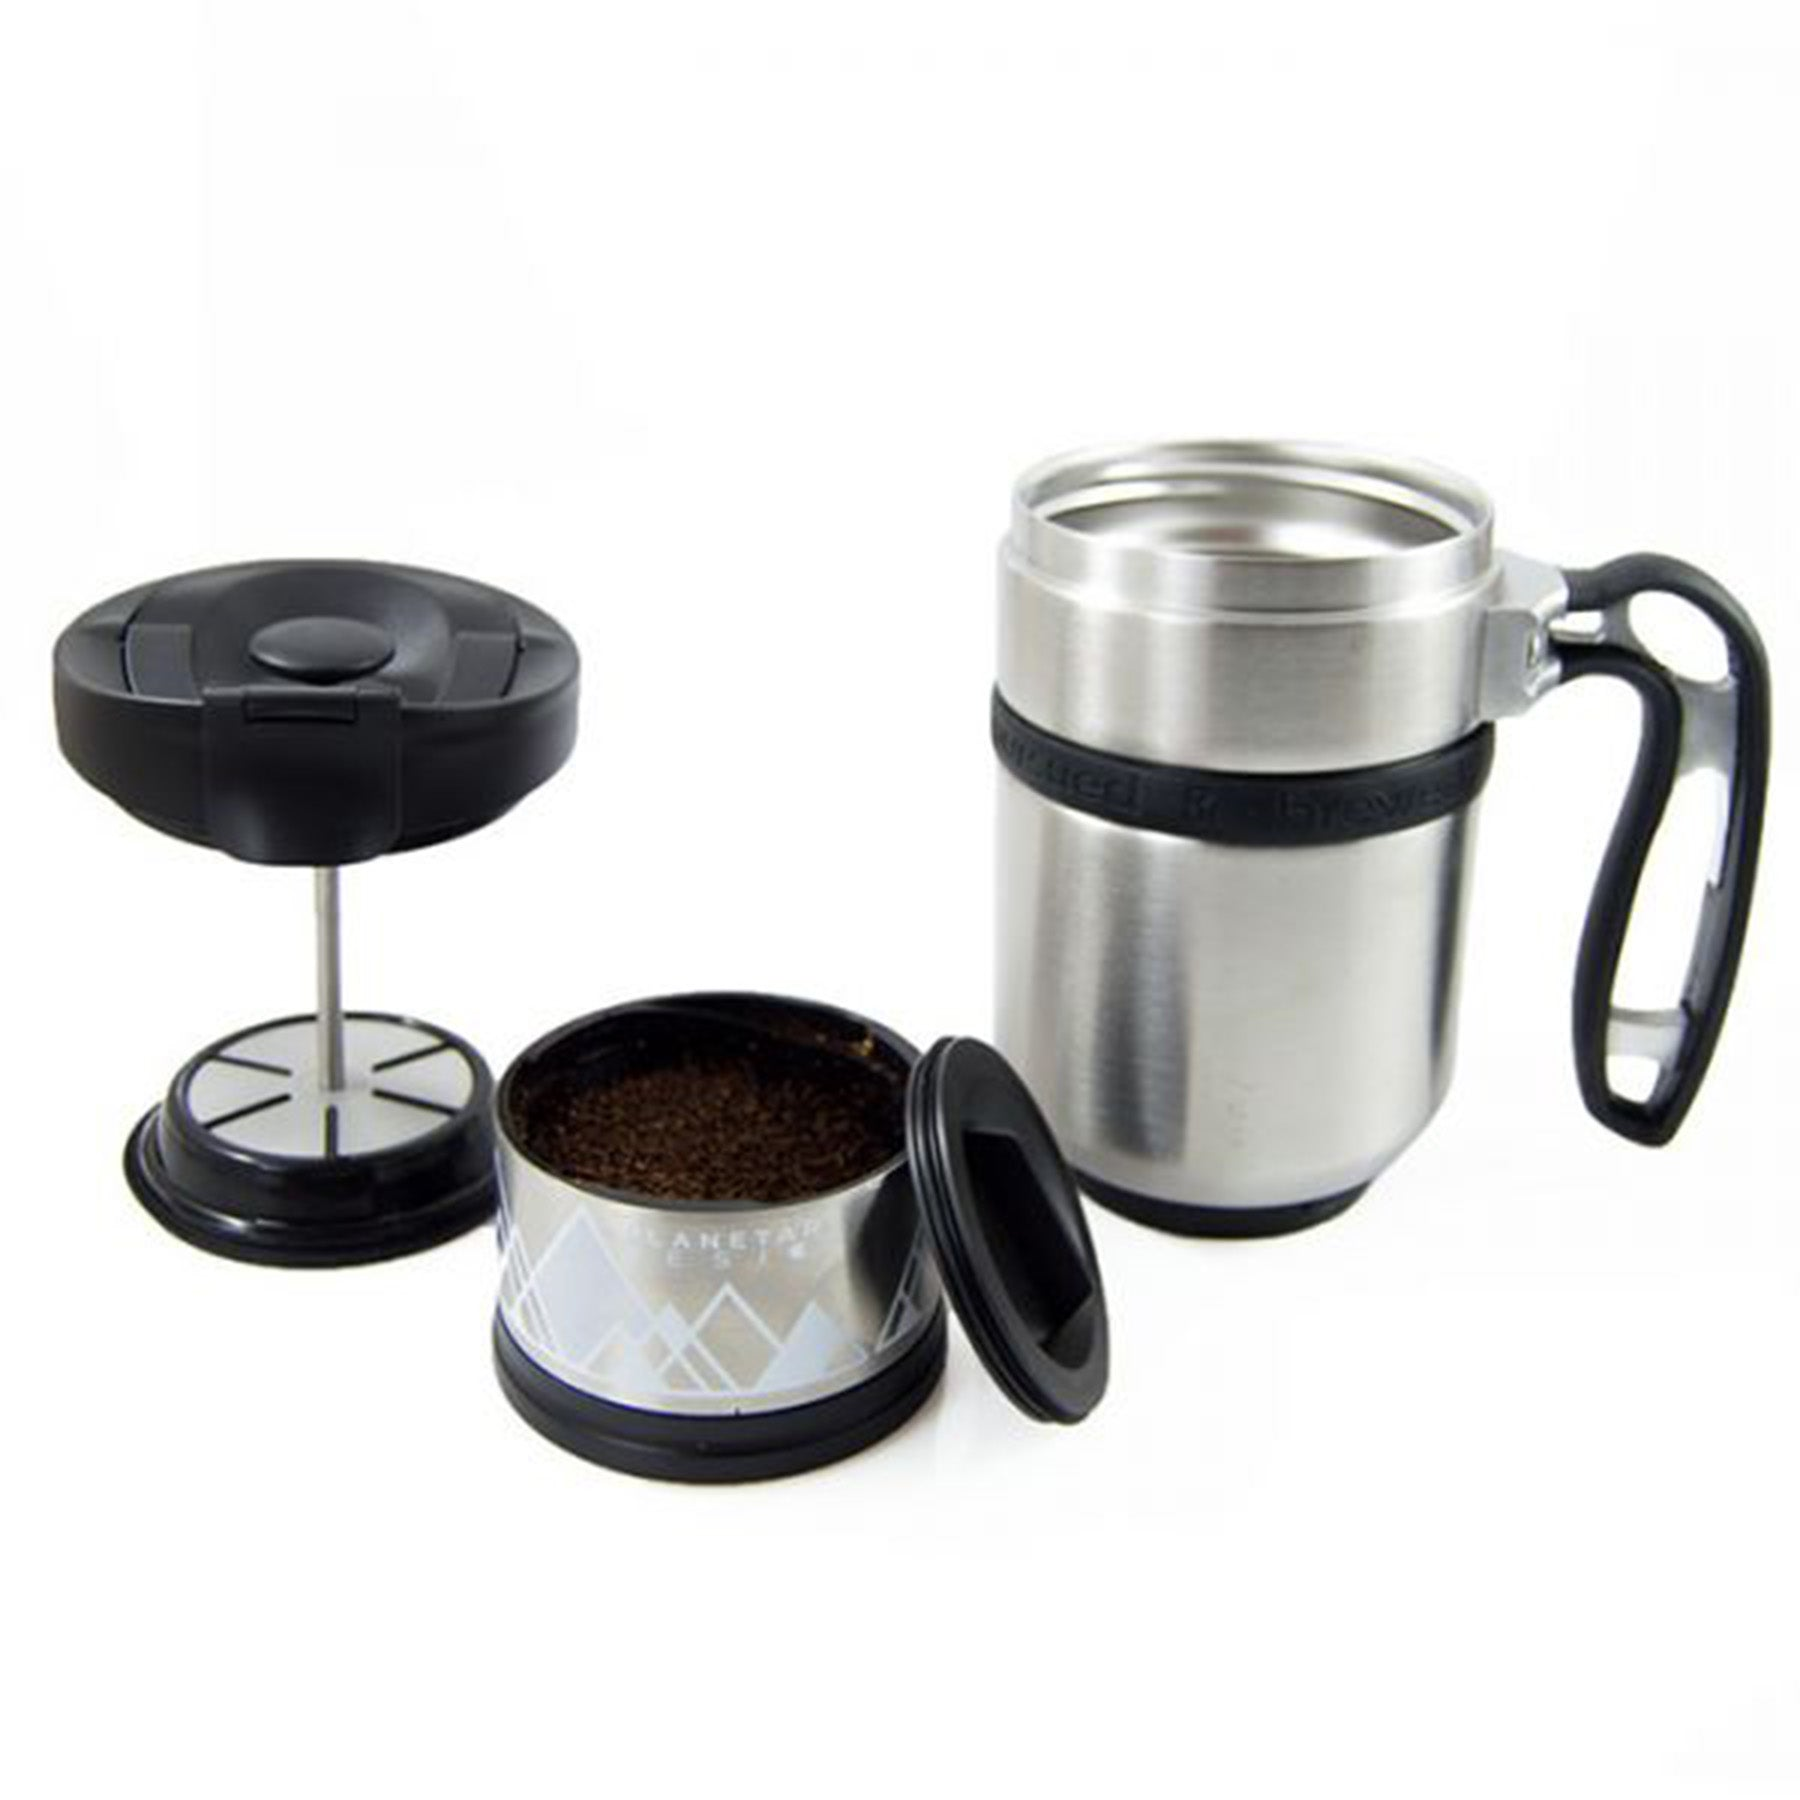 double shot coffee mug shown with the mug and the coffee press component